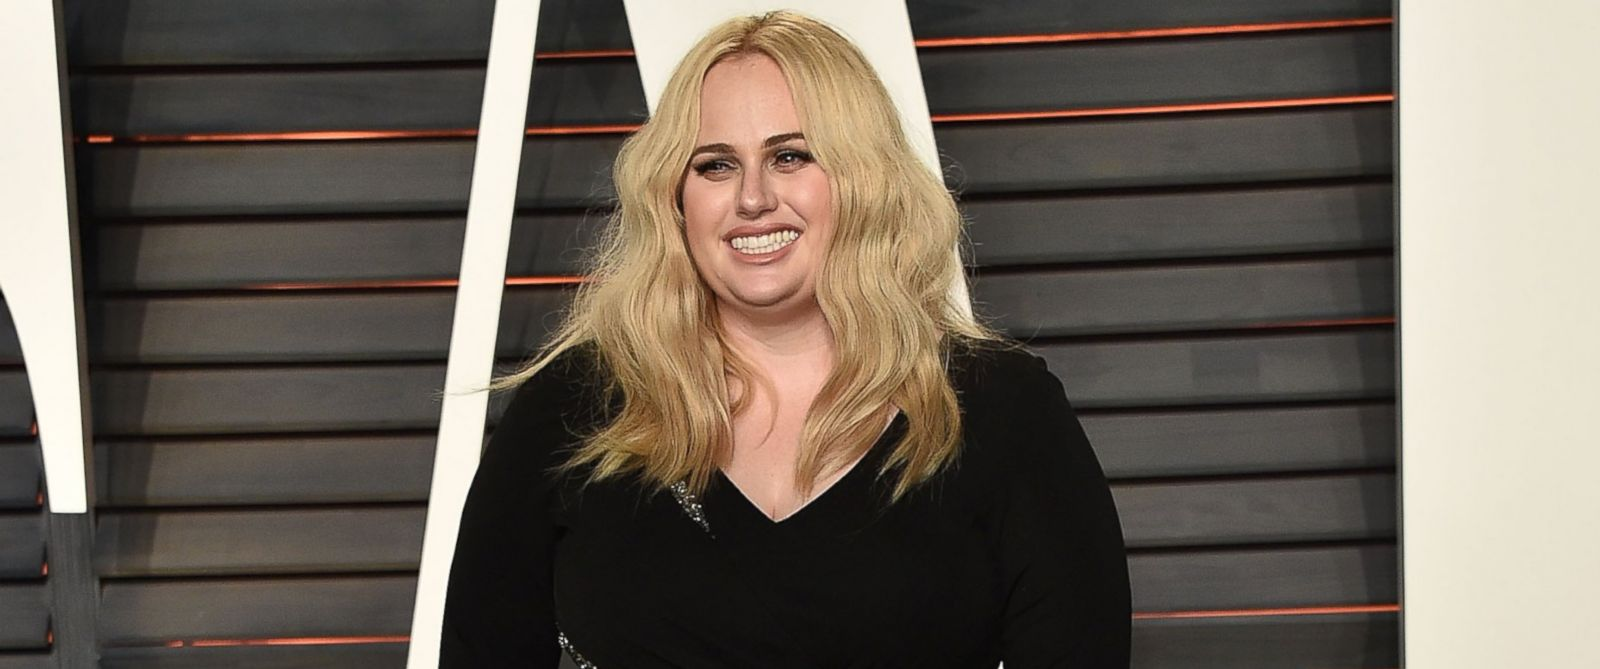 PHOTO: Actress Rebel Wilson arrives at the 2016 Vanity Fair Oscar Party Hosted By Graydon Carter at Wallis Annenberg Center for the Performing Arts, Feb. 28, 2016 in Beverly Hills, Calif.